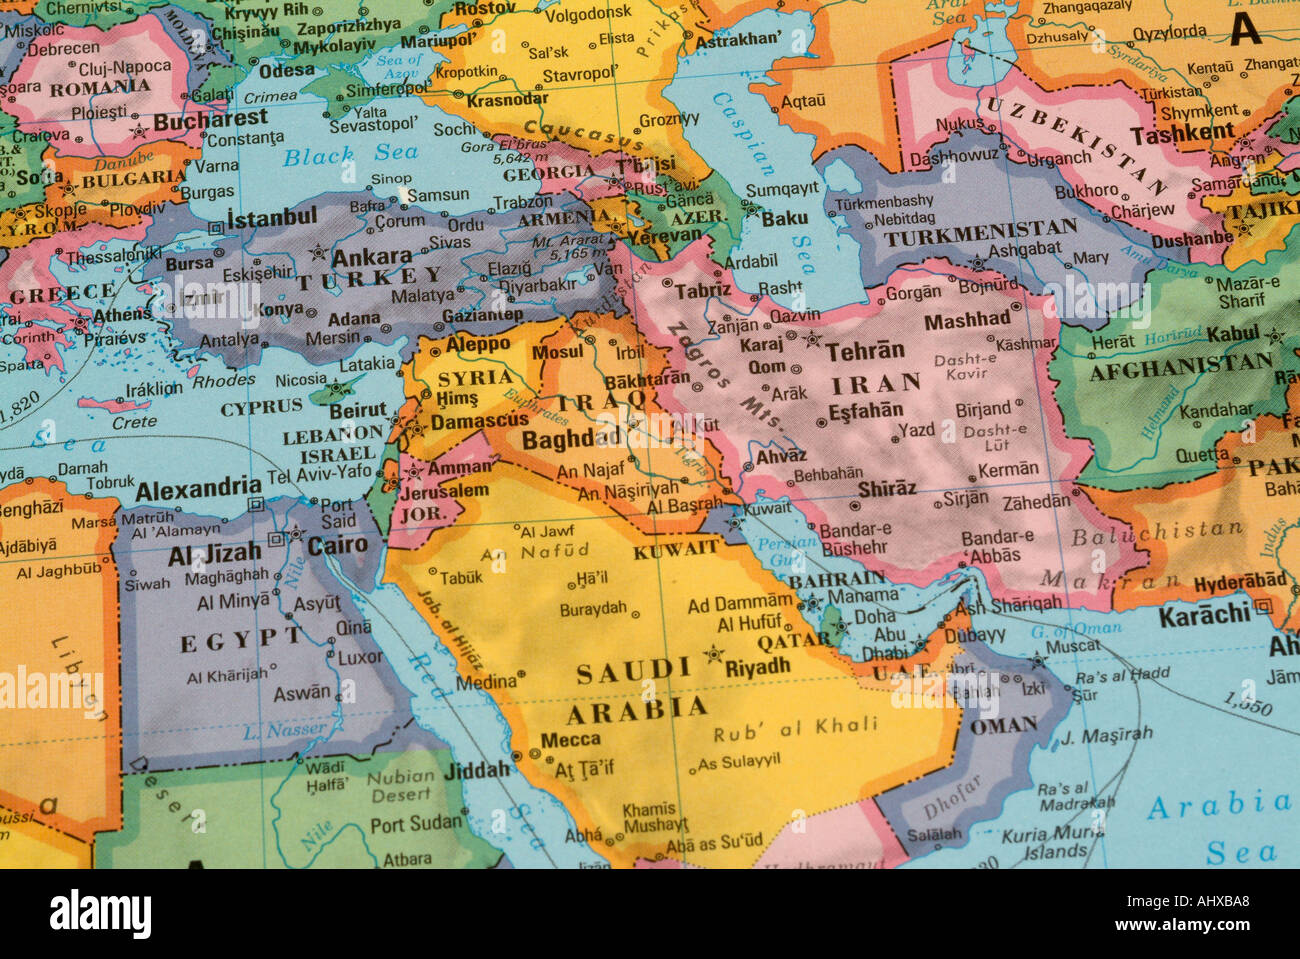 Map Of Continents And Countries illustrated world map with countries and continents Stock Photo